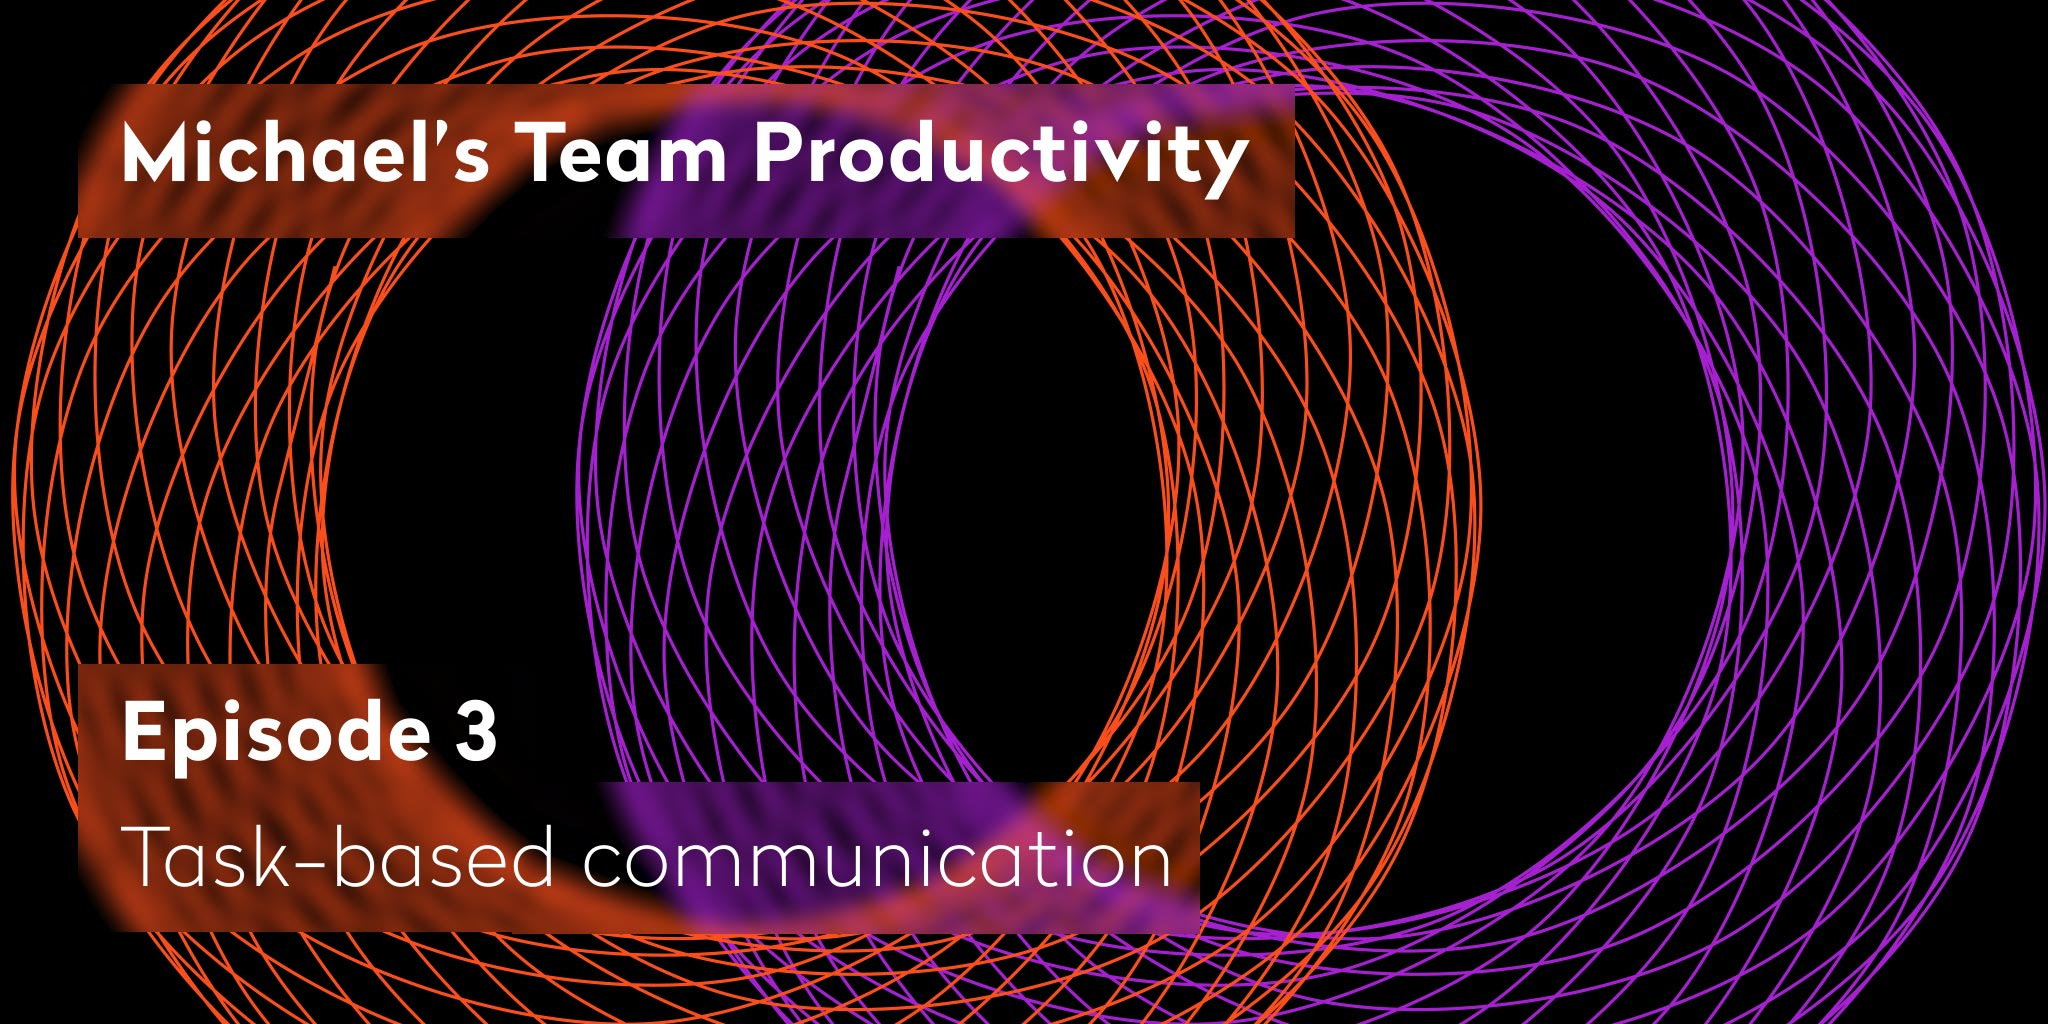 Waht is task-based communication - Michael's Team Productivity